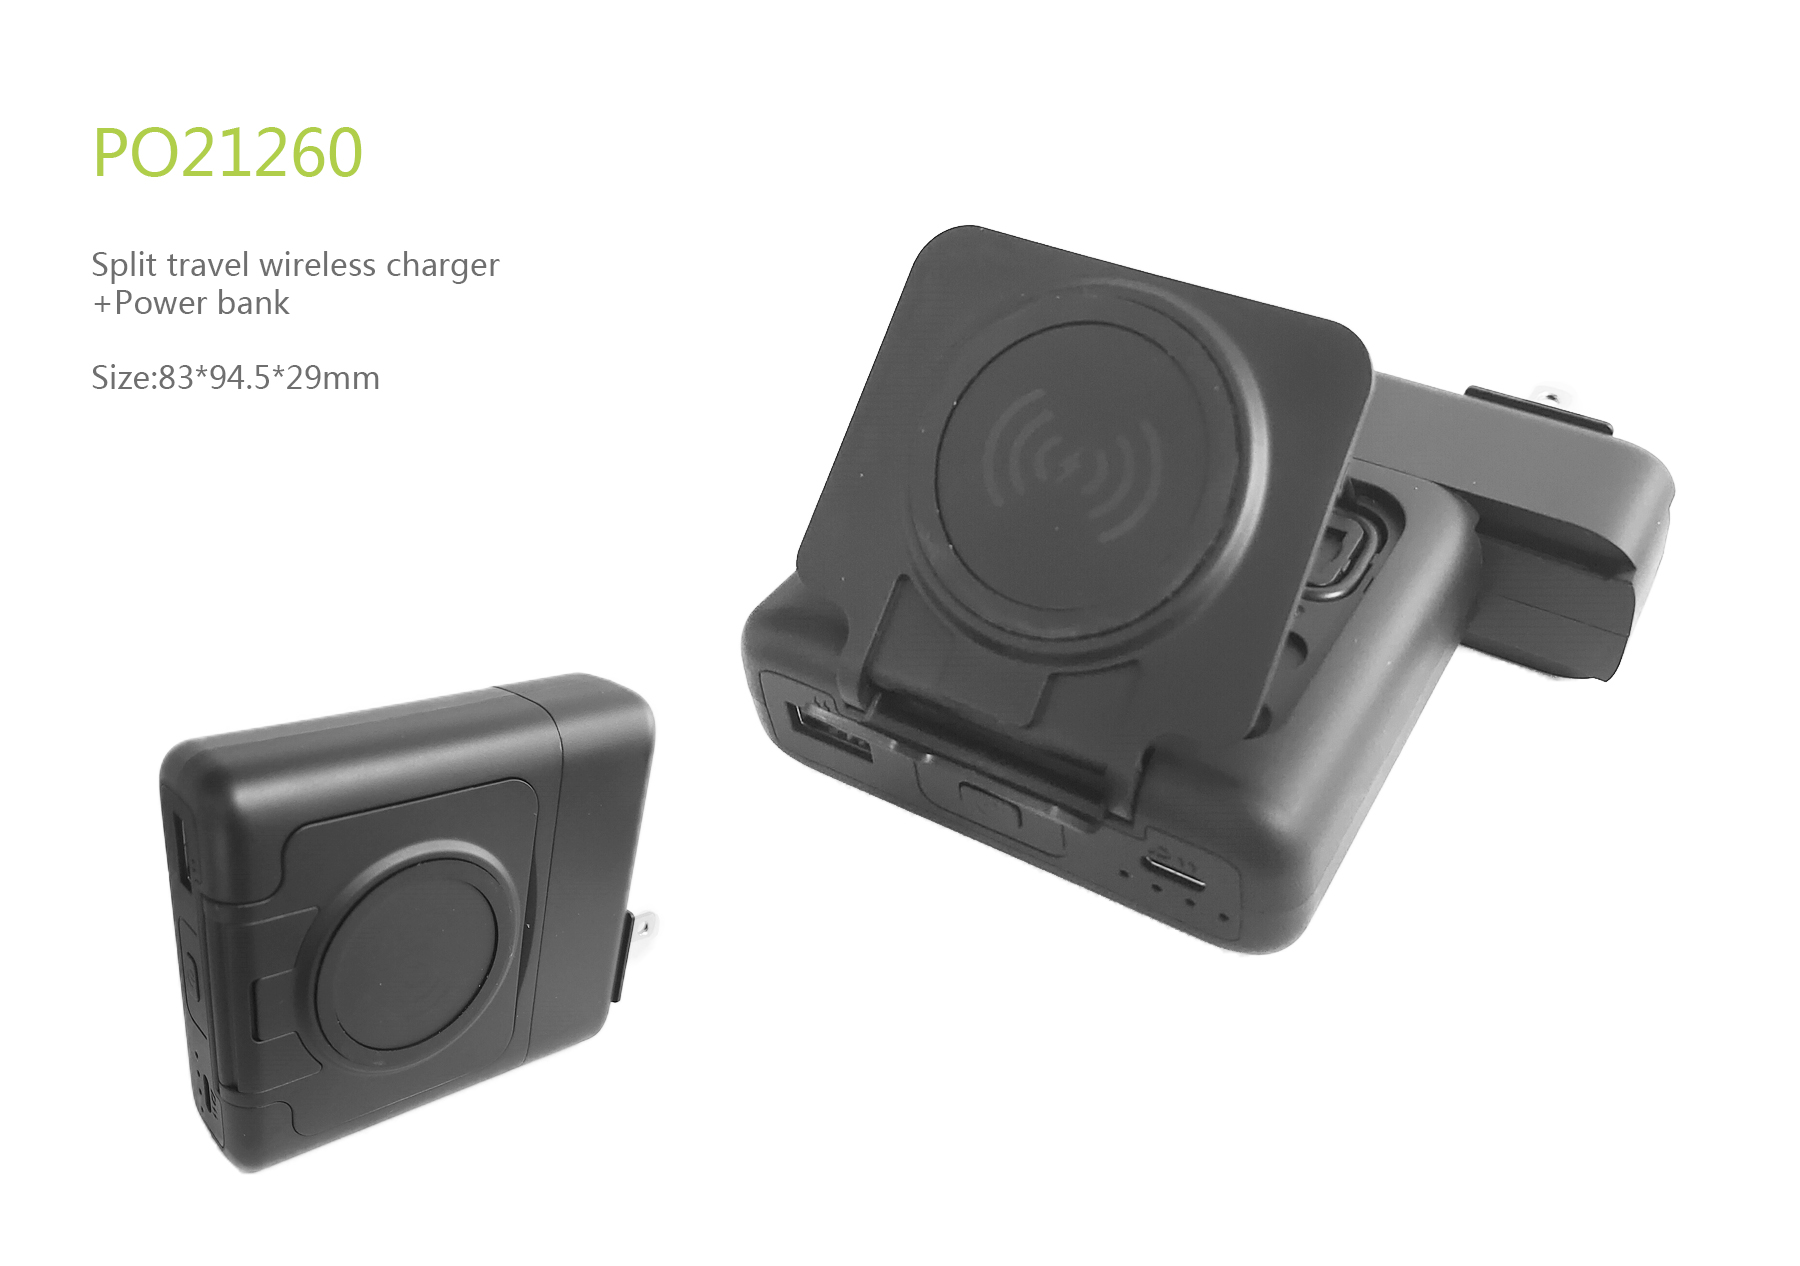 Split travel wireless charger and power bank